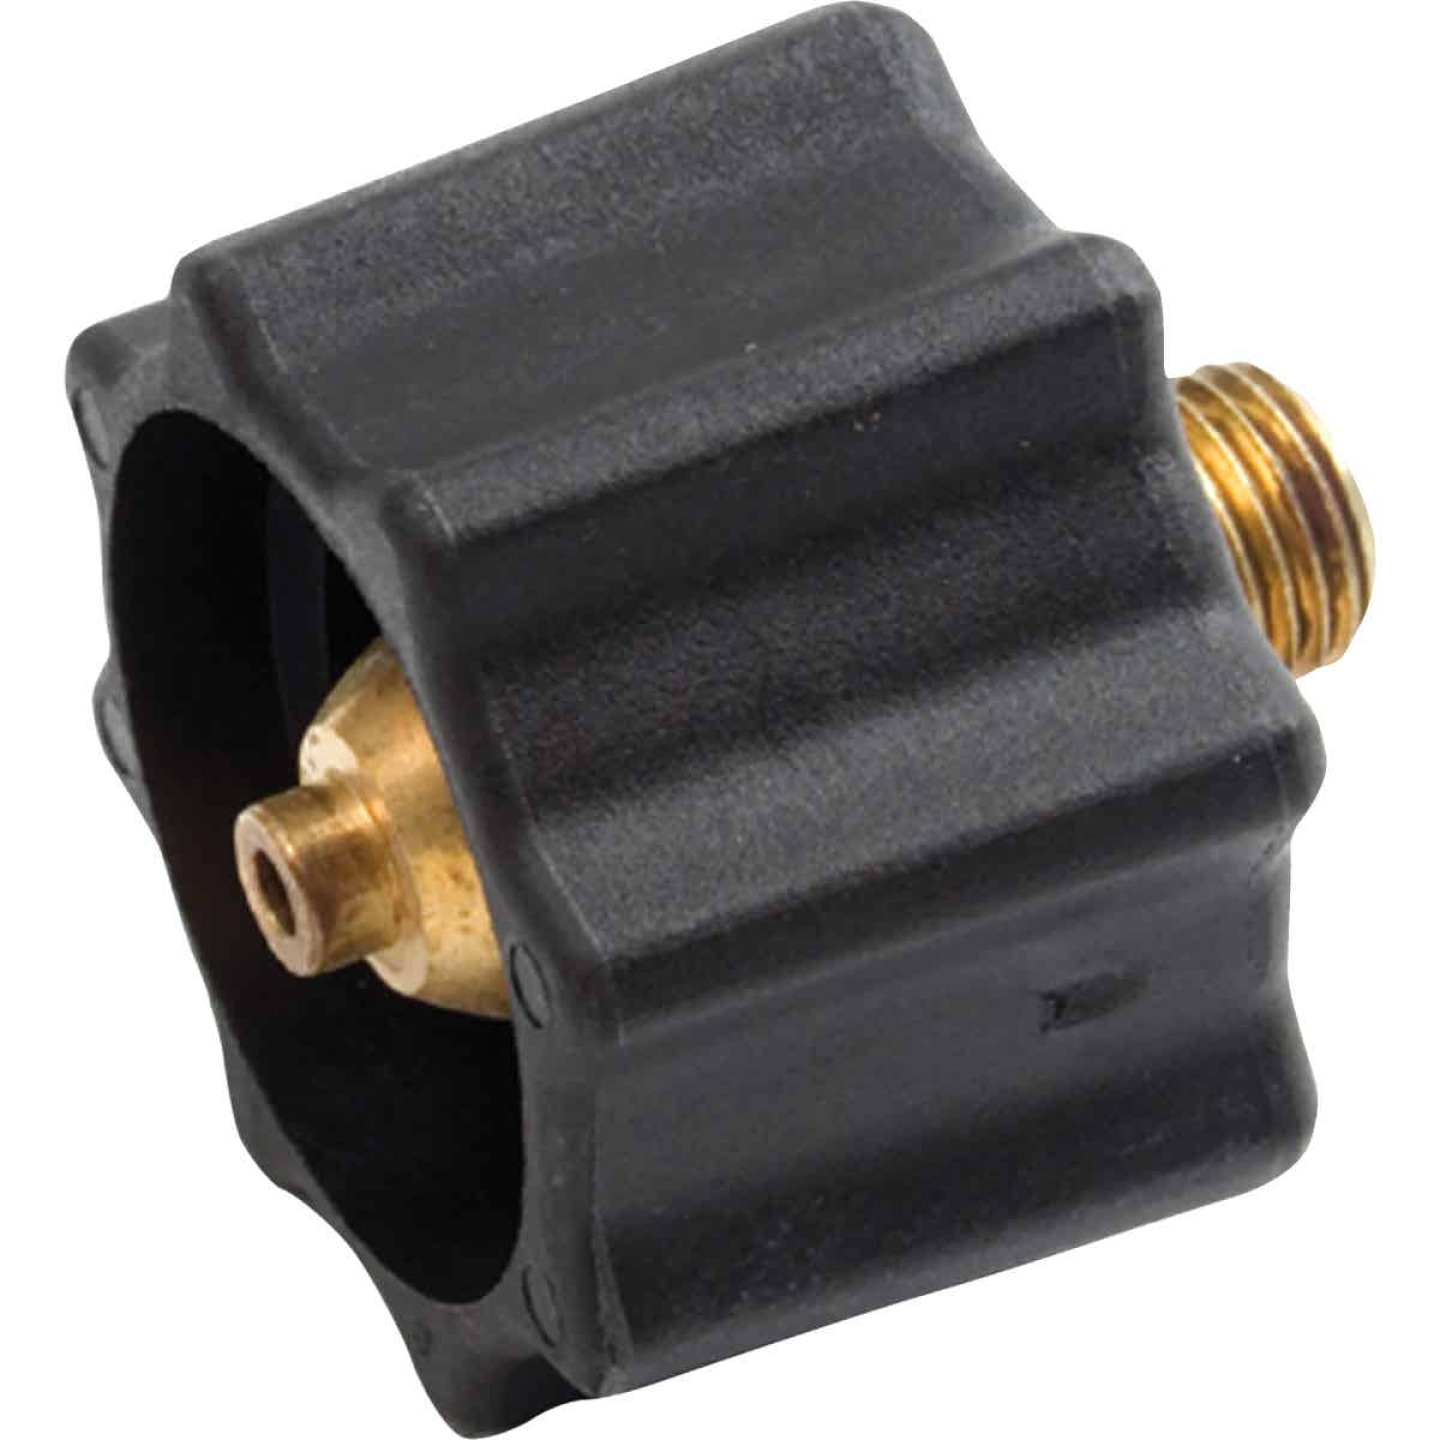 MR. HEATER Coupling Nut x 1/4 In. MPT Propane Grill End Fitting Image 1